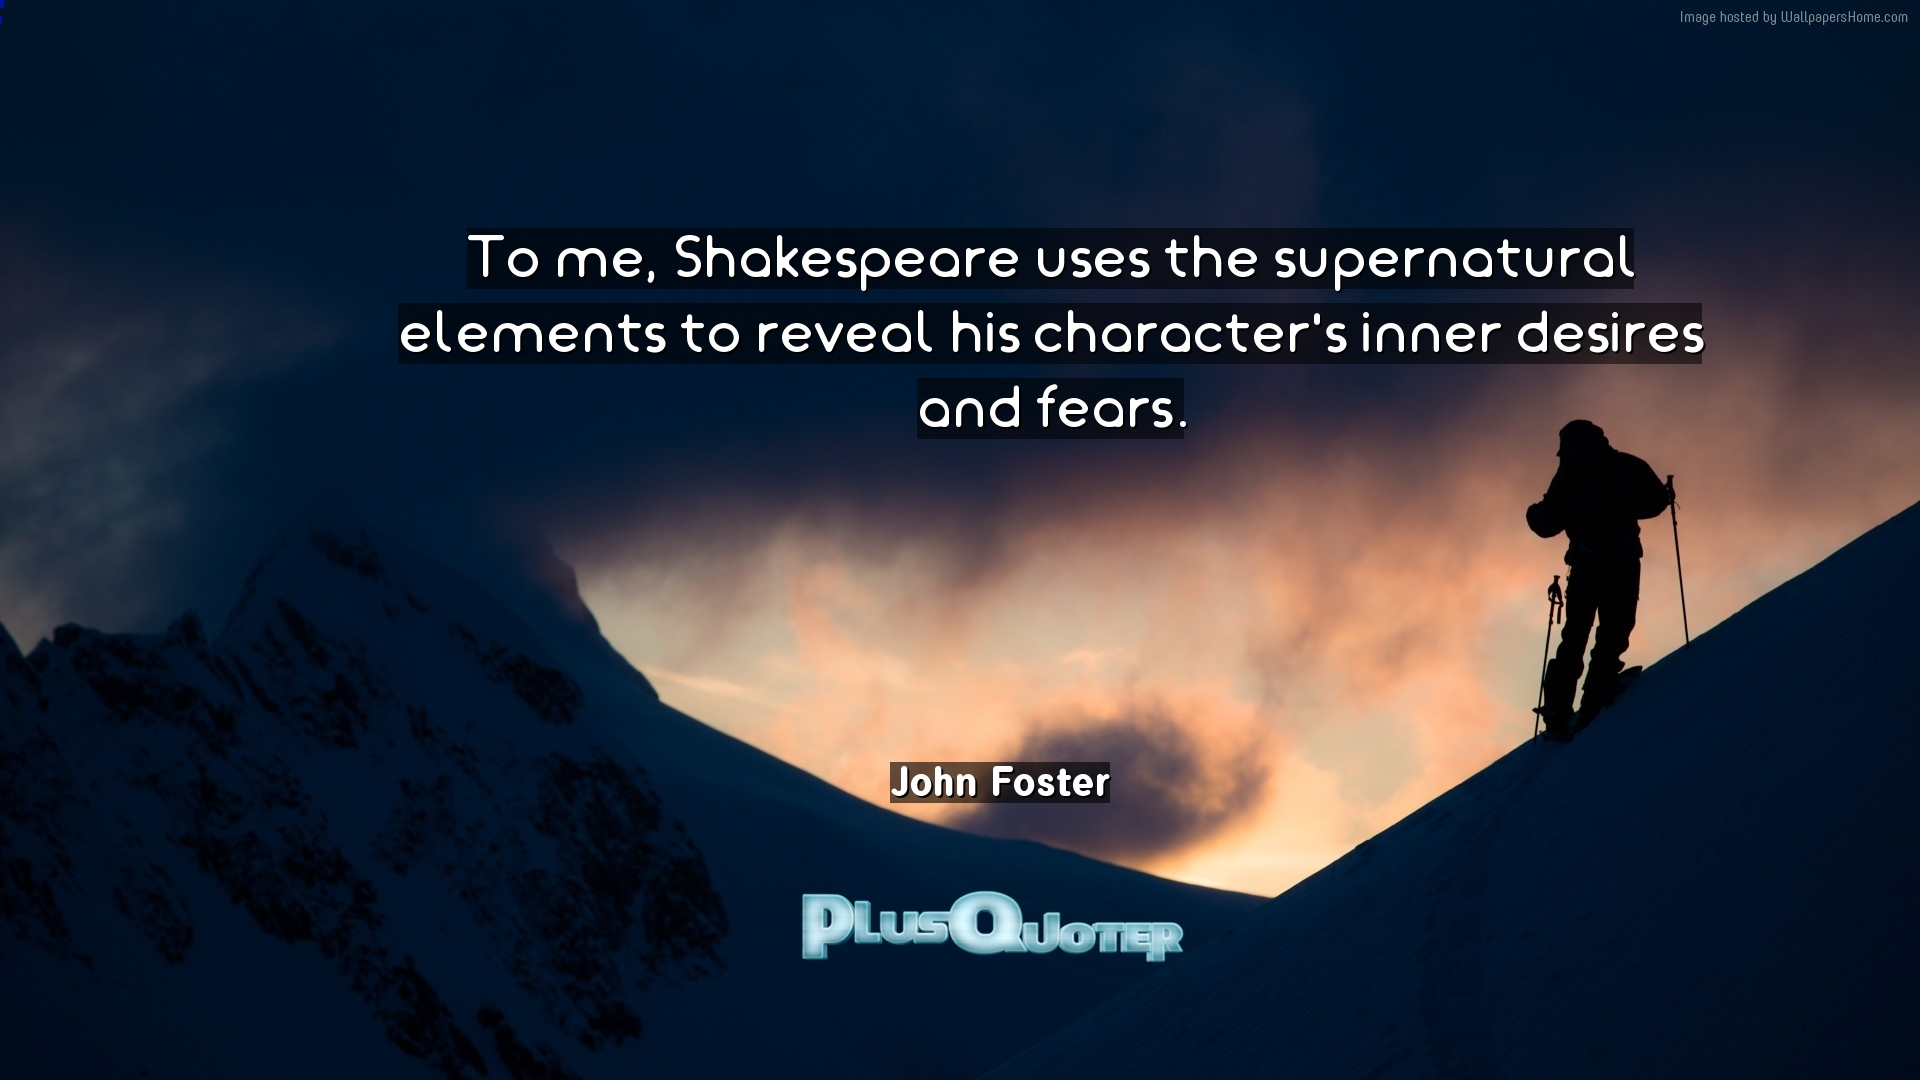 to me shakespeare uses the supernatural elements to reveal his   to me shakespeare uses the supernatural elements to reveal his character s inner desires and fears john foster com